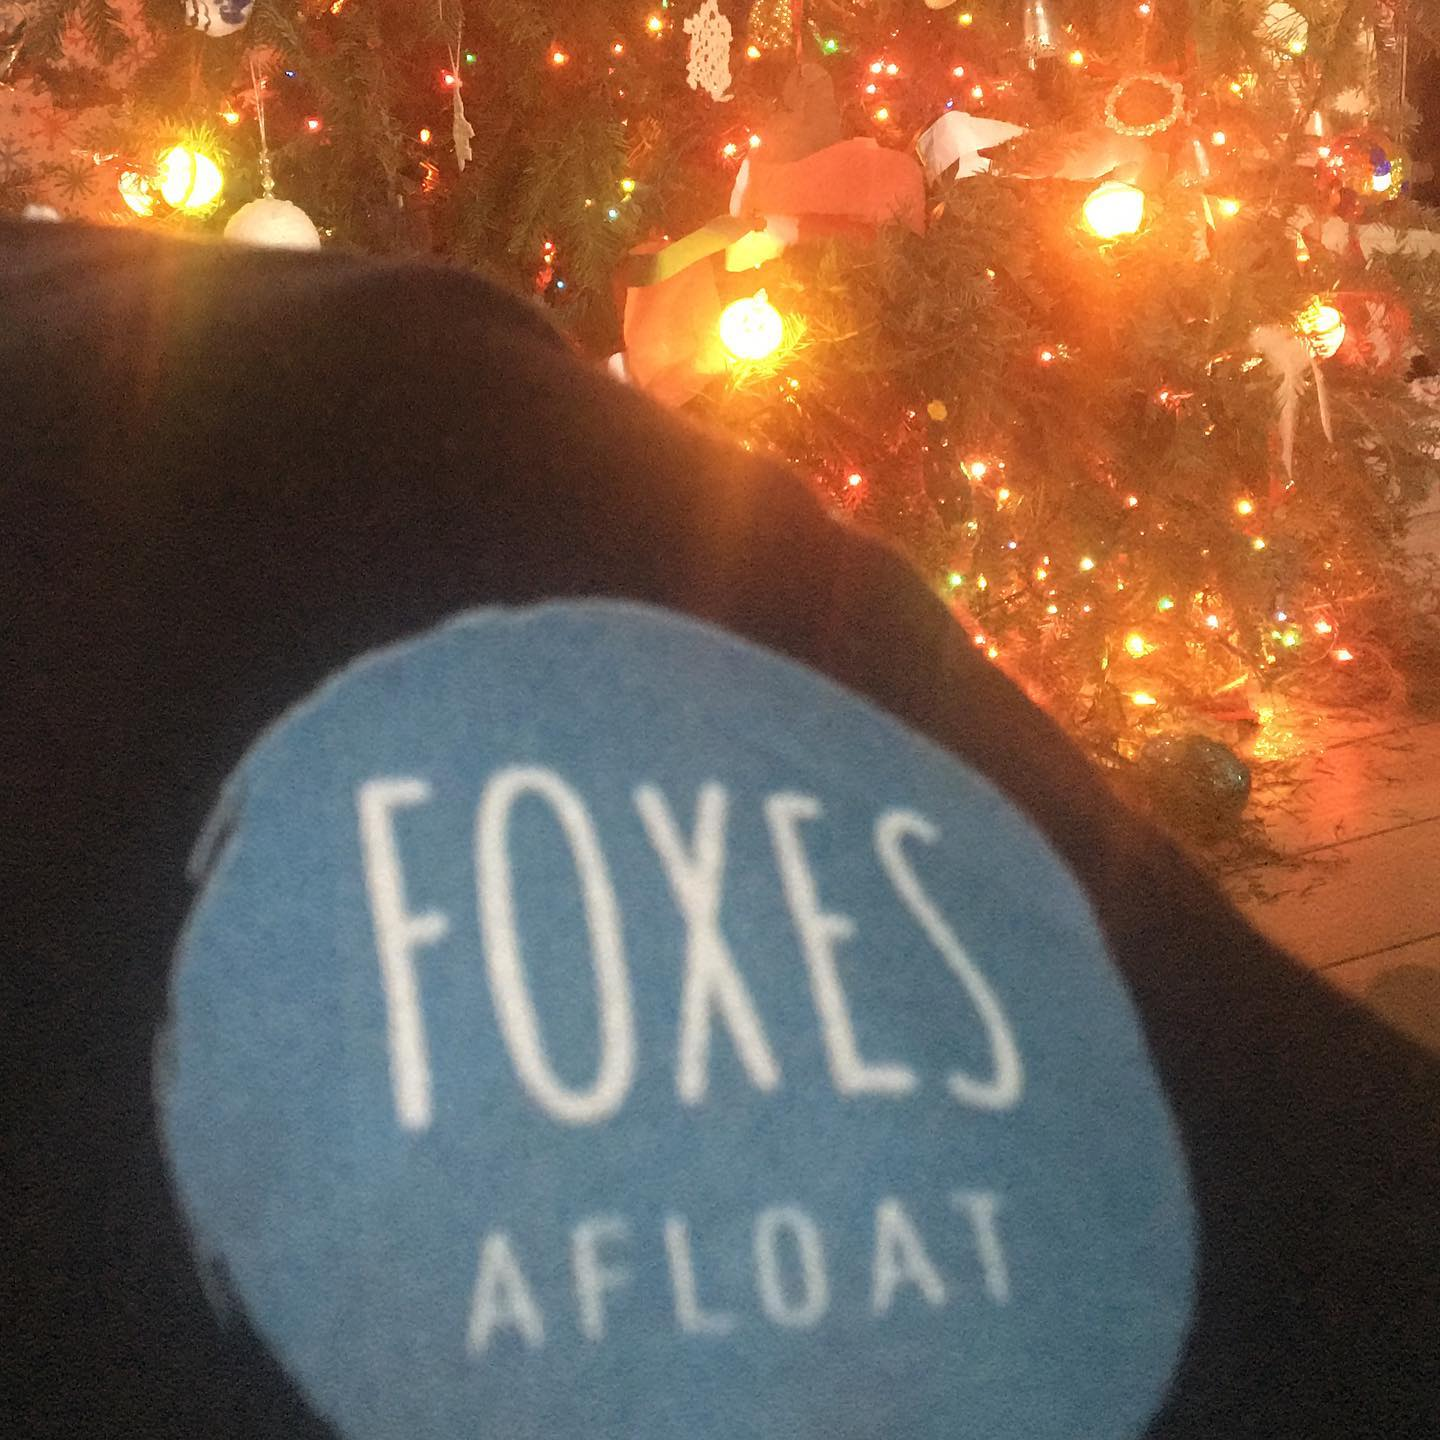 My favorite gift this year is a t-shirt from London- @foxesafloat